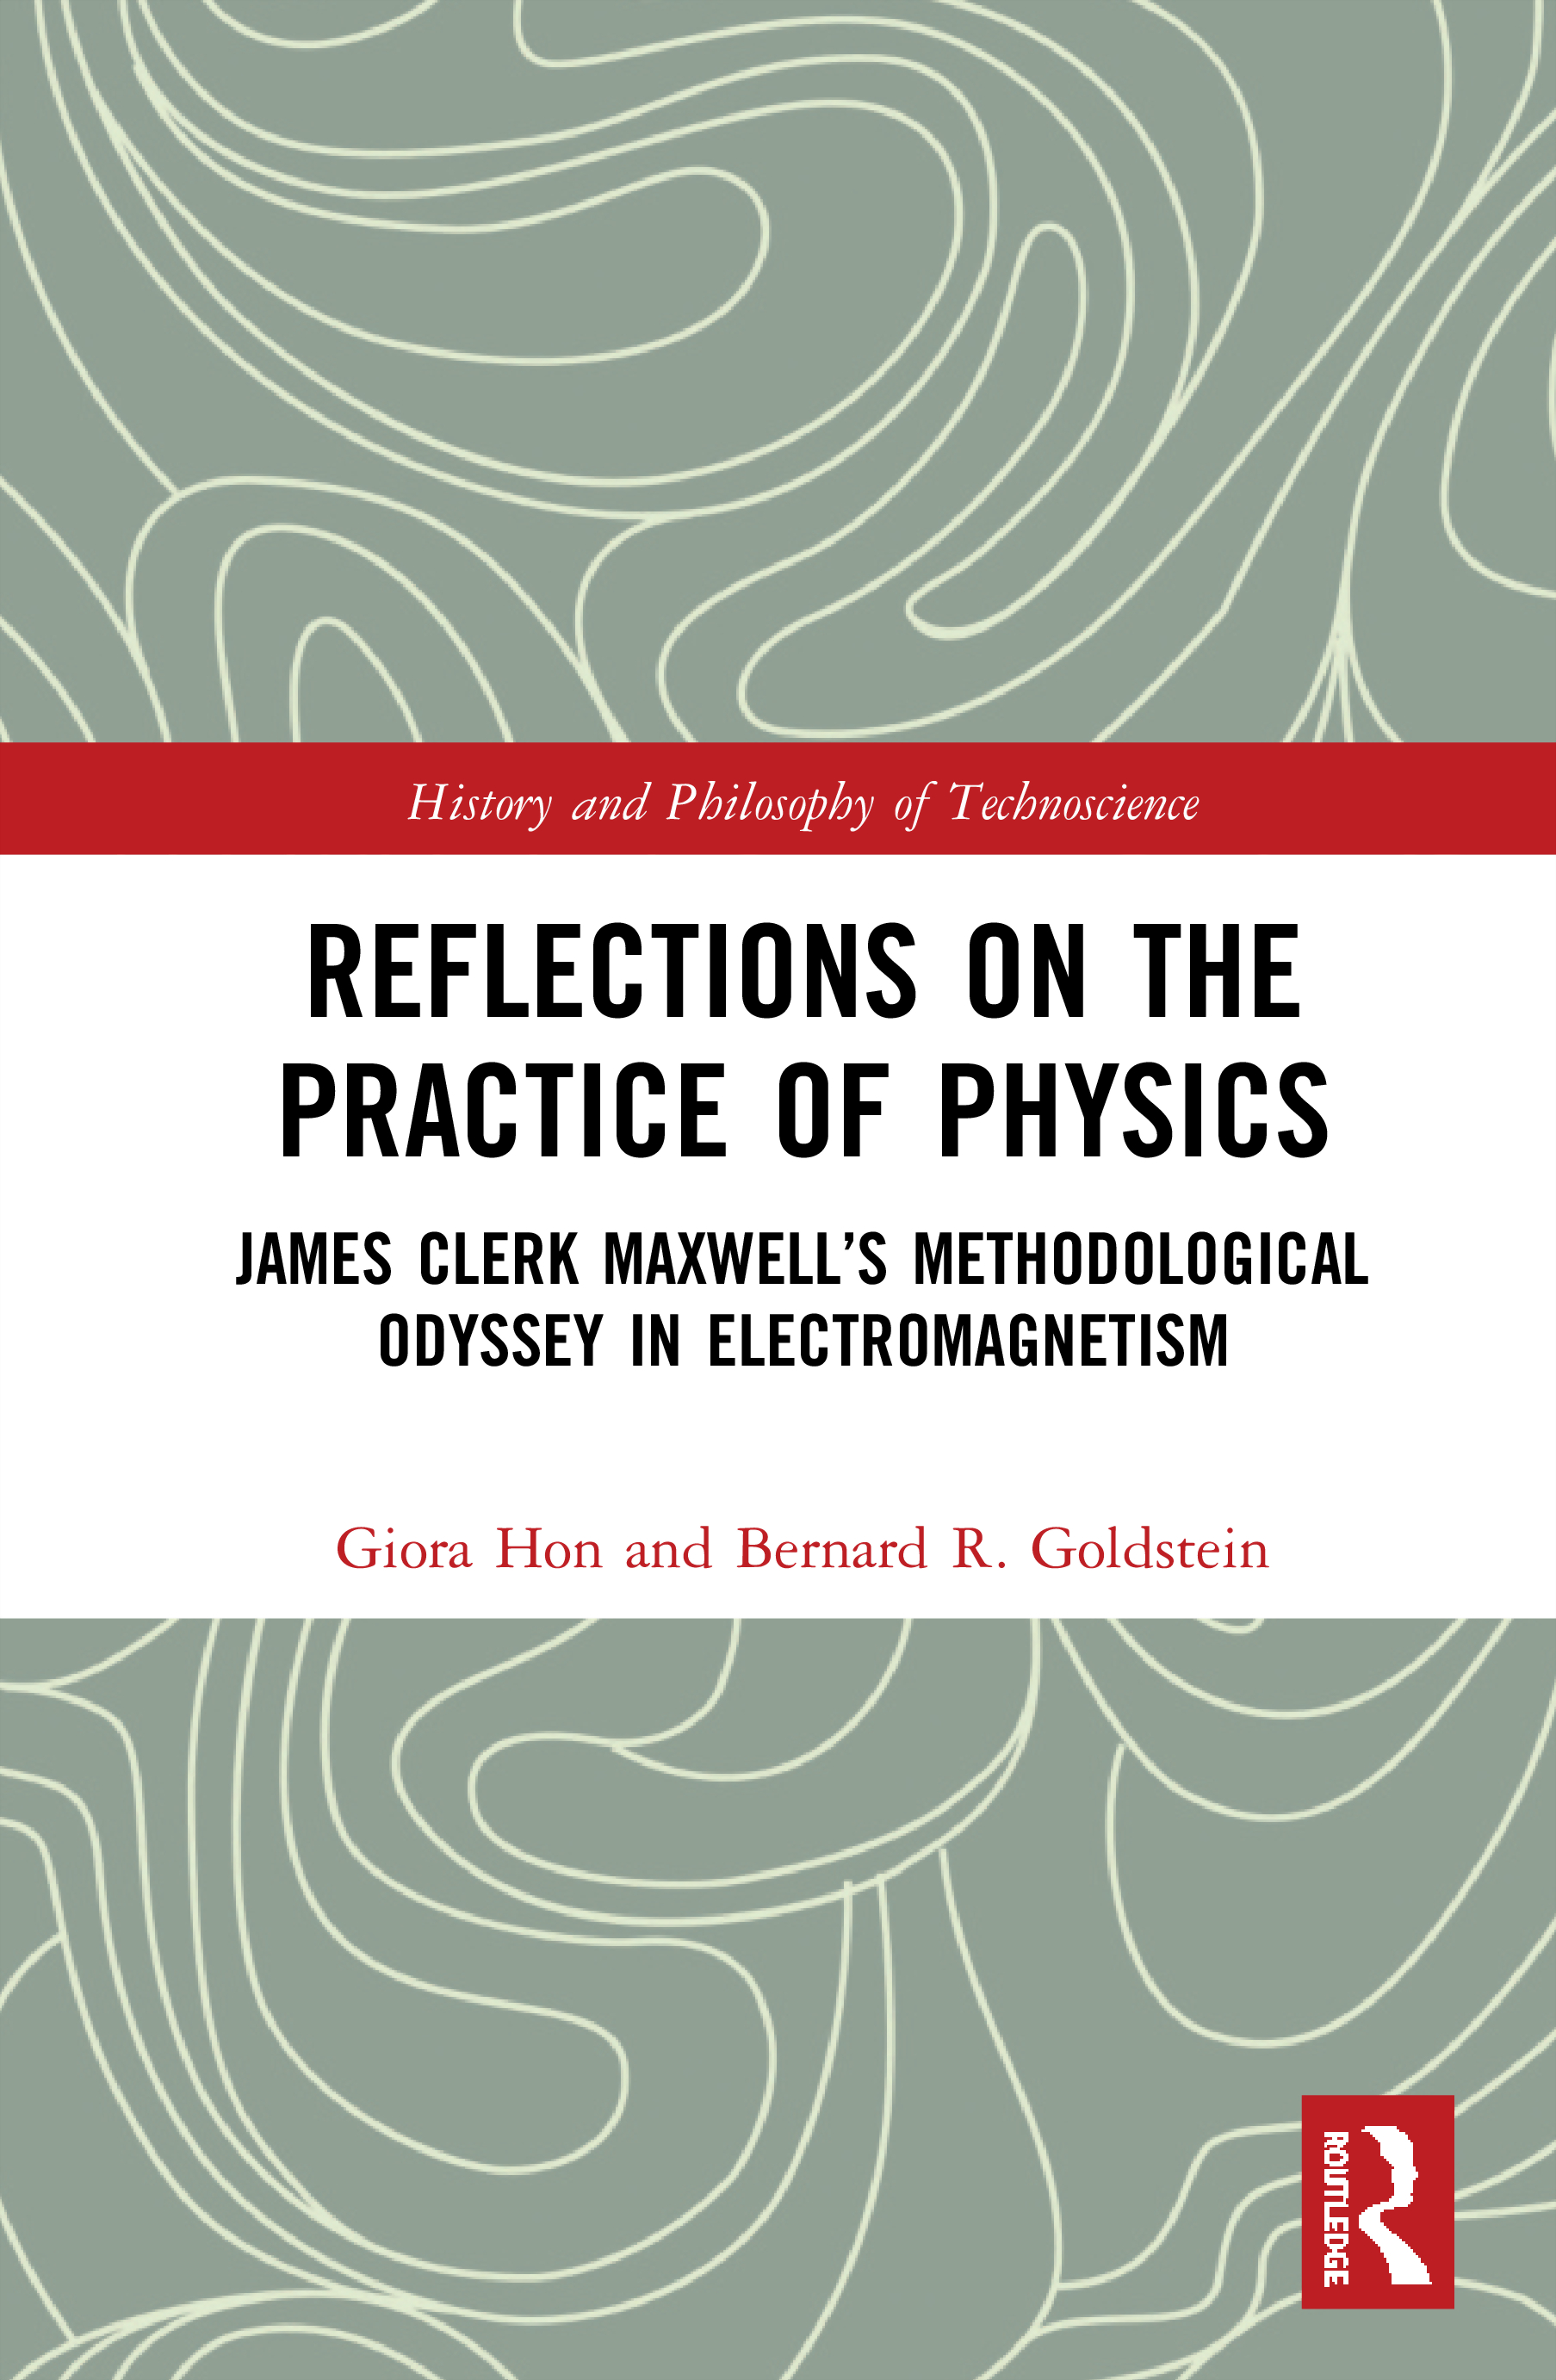 Reflections on the Practice of Physics: James Clerk Maxwell's Methodological Odyssey in Electromagnetism book cover